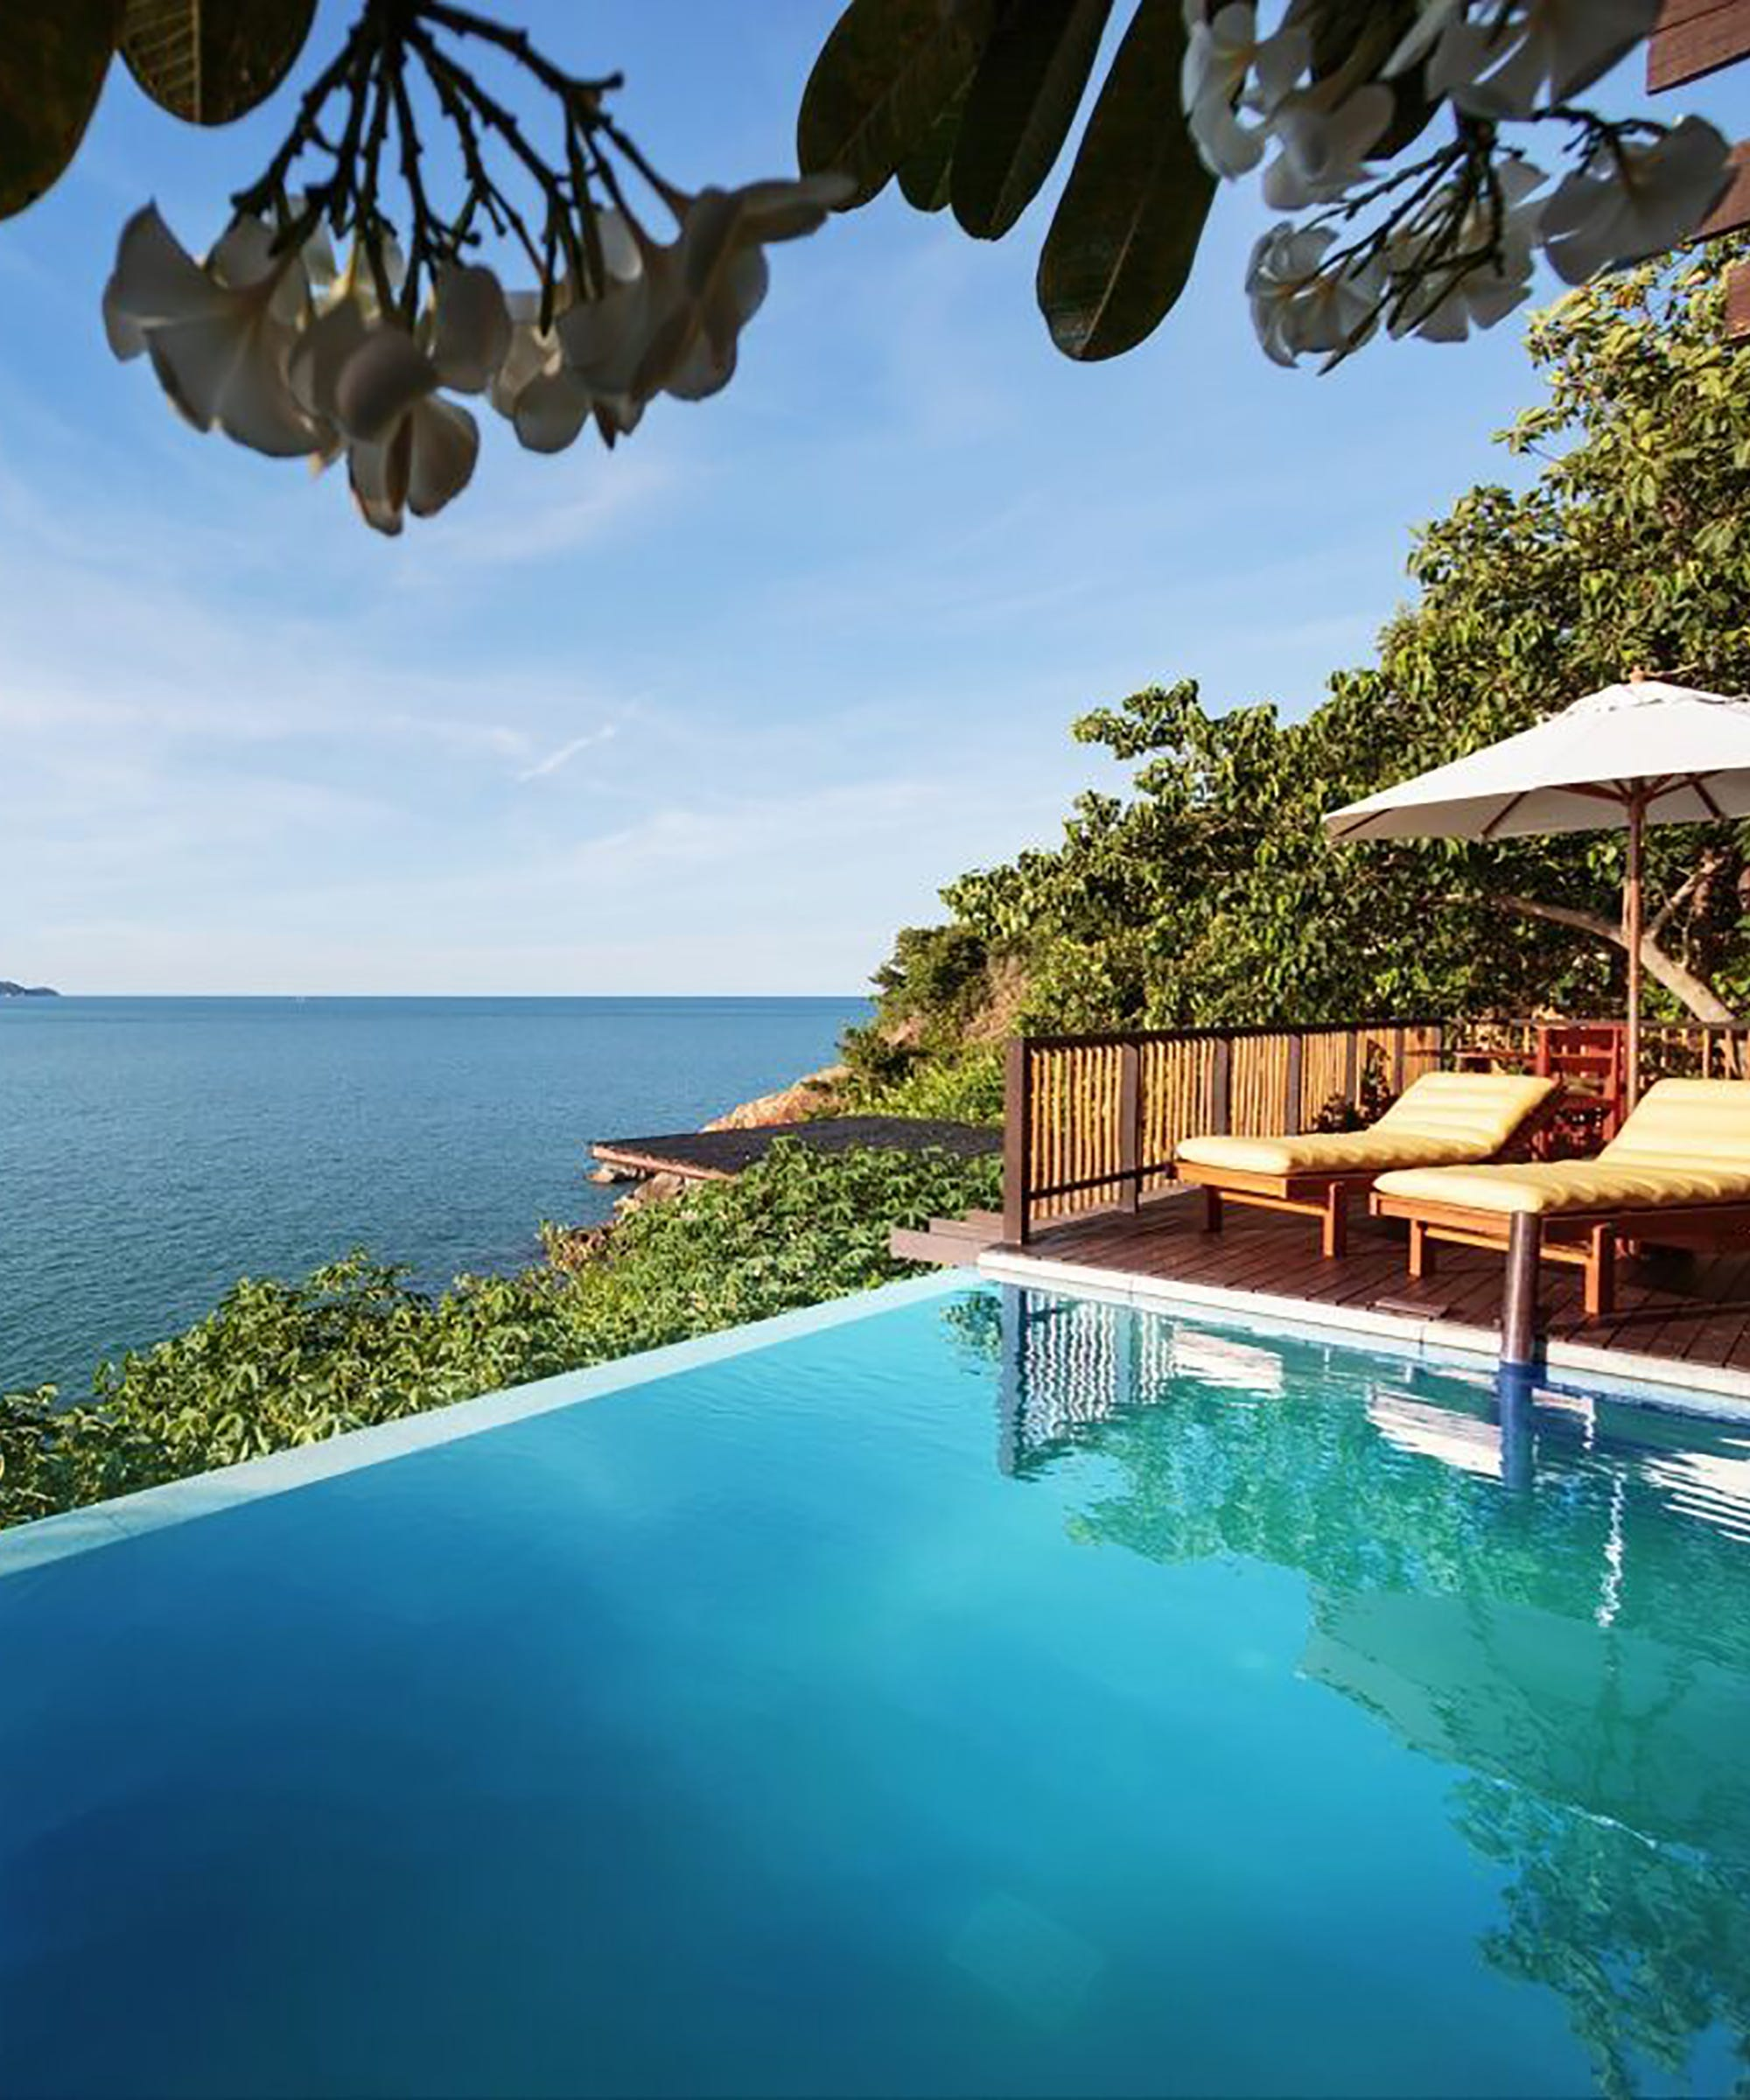 Plunge pool amenities hotels with private pools for Plunge pool